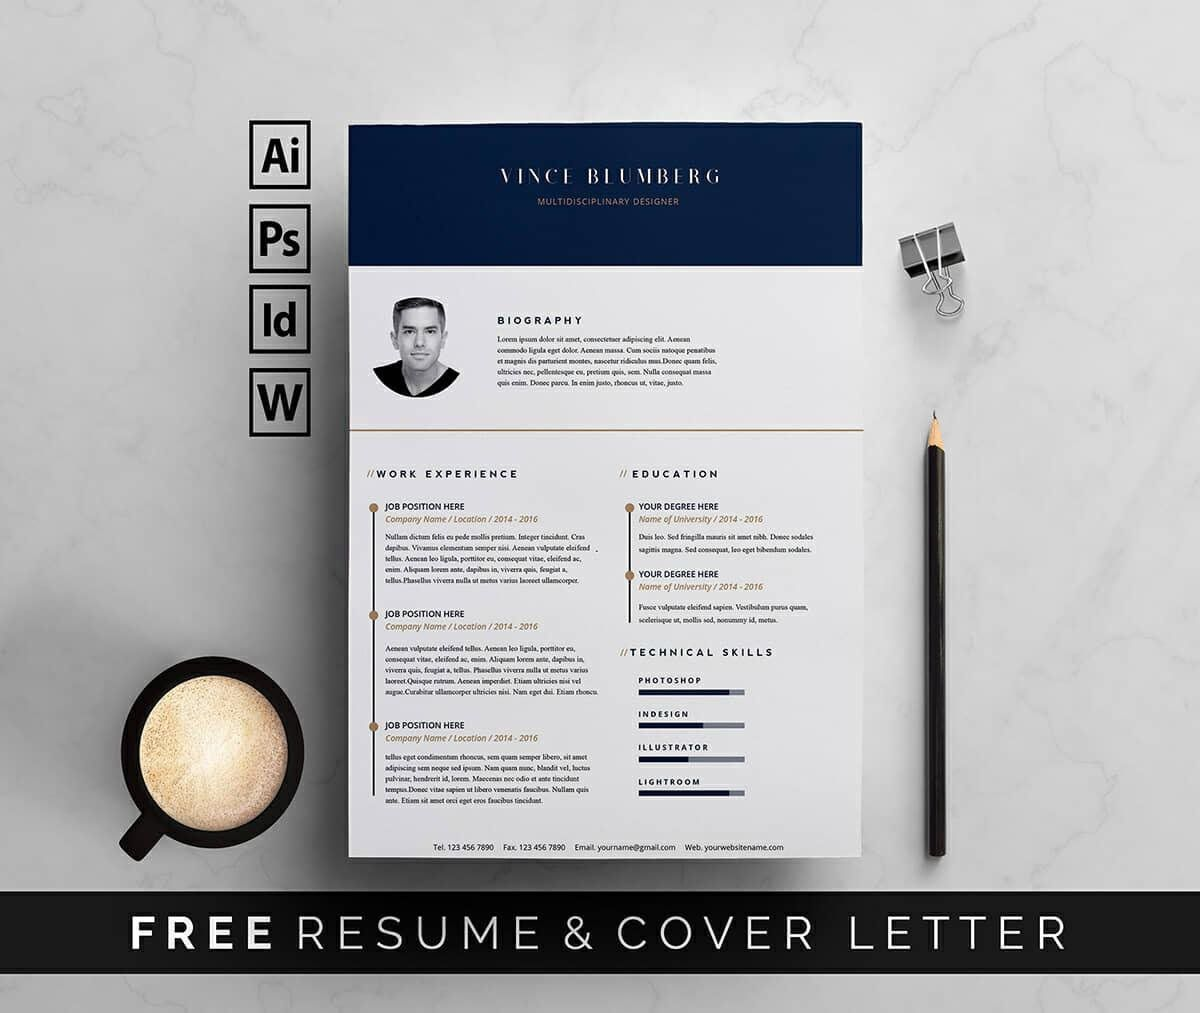 008 Astounding Resume Template Free Word Photo  Download Document 2020 For FresherFull